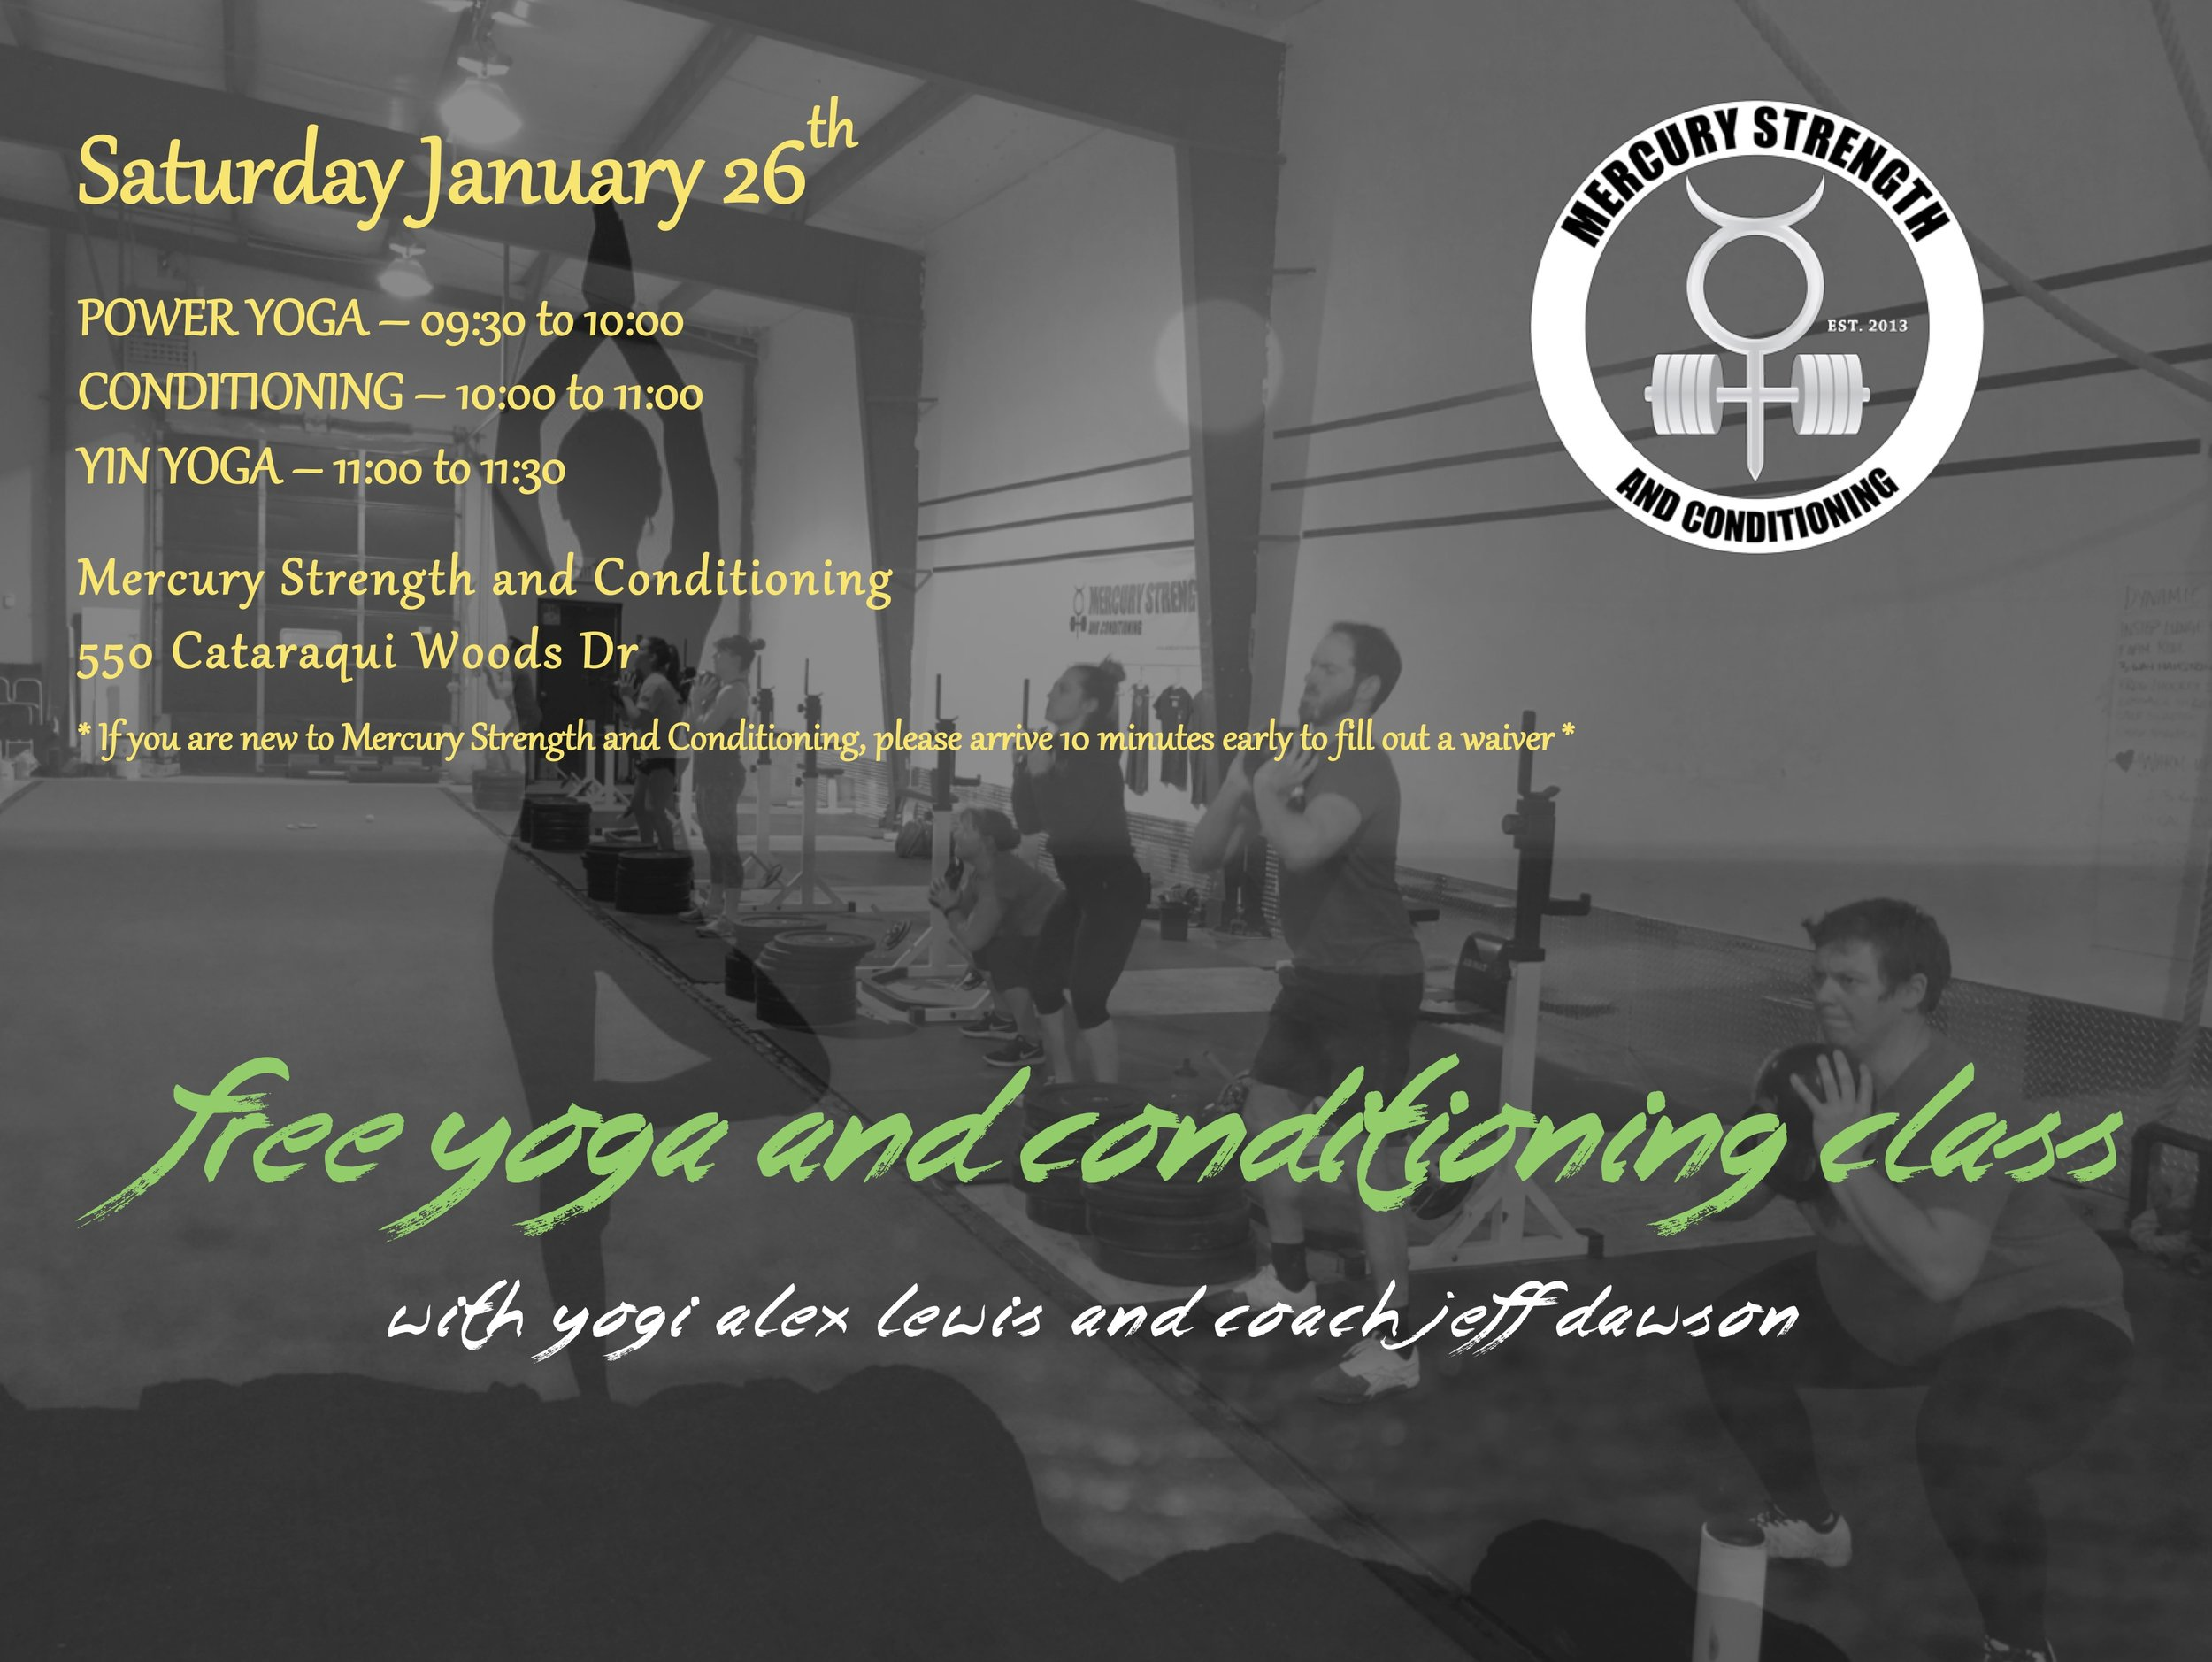 THIS SATURDAY! TWO WORLDS COLLIDE FOR ONE GREAT WORKOUT!